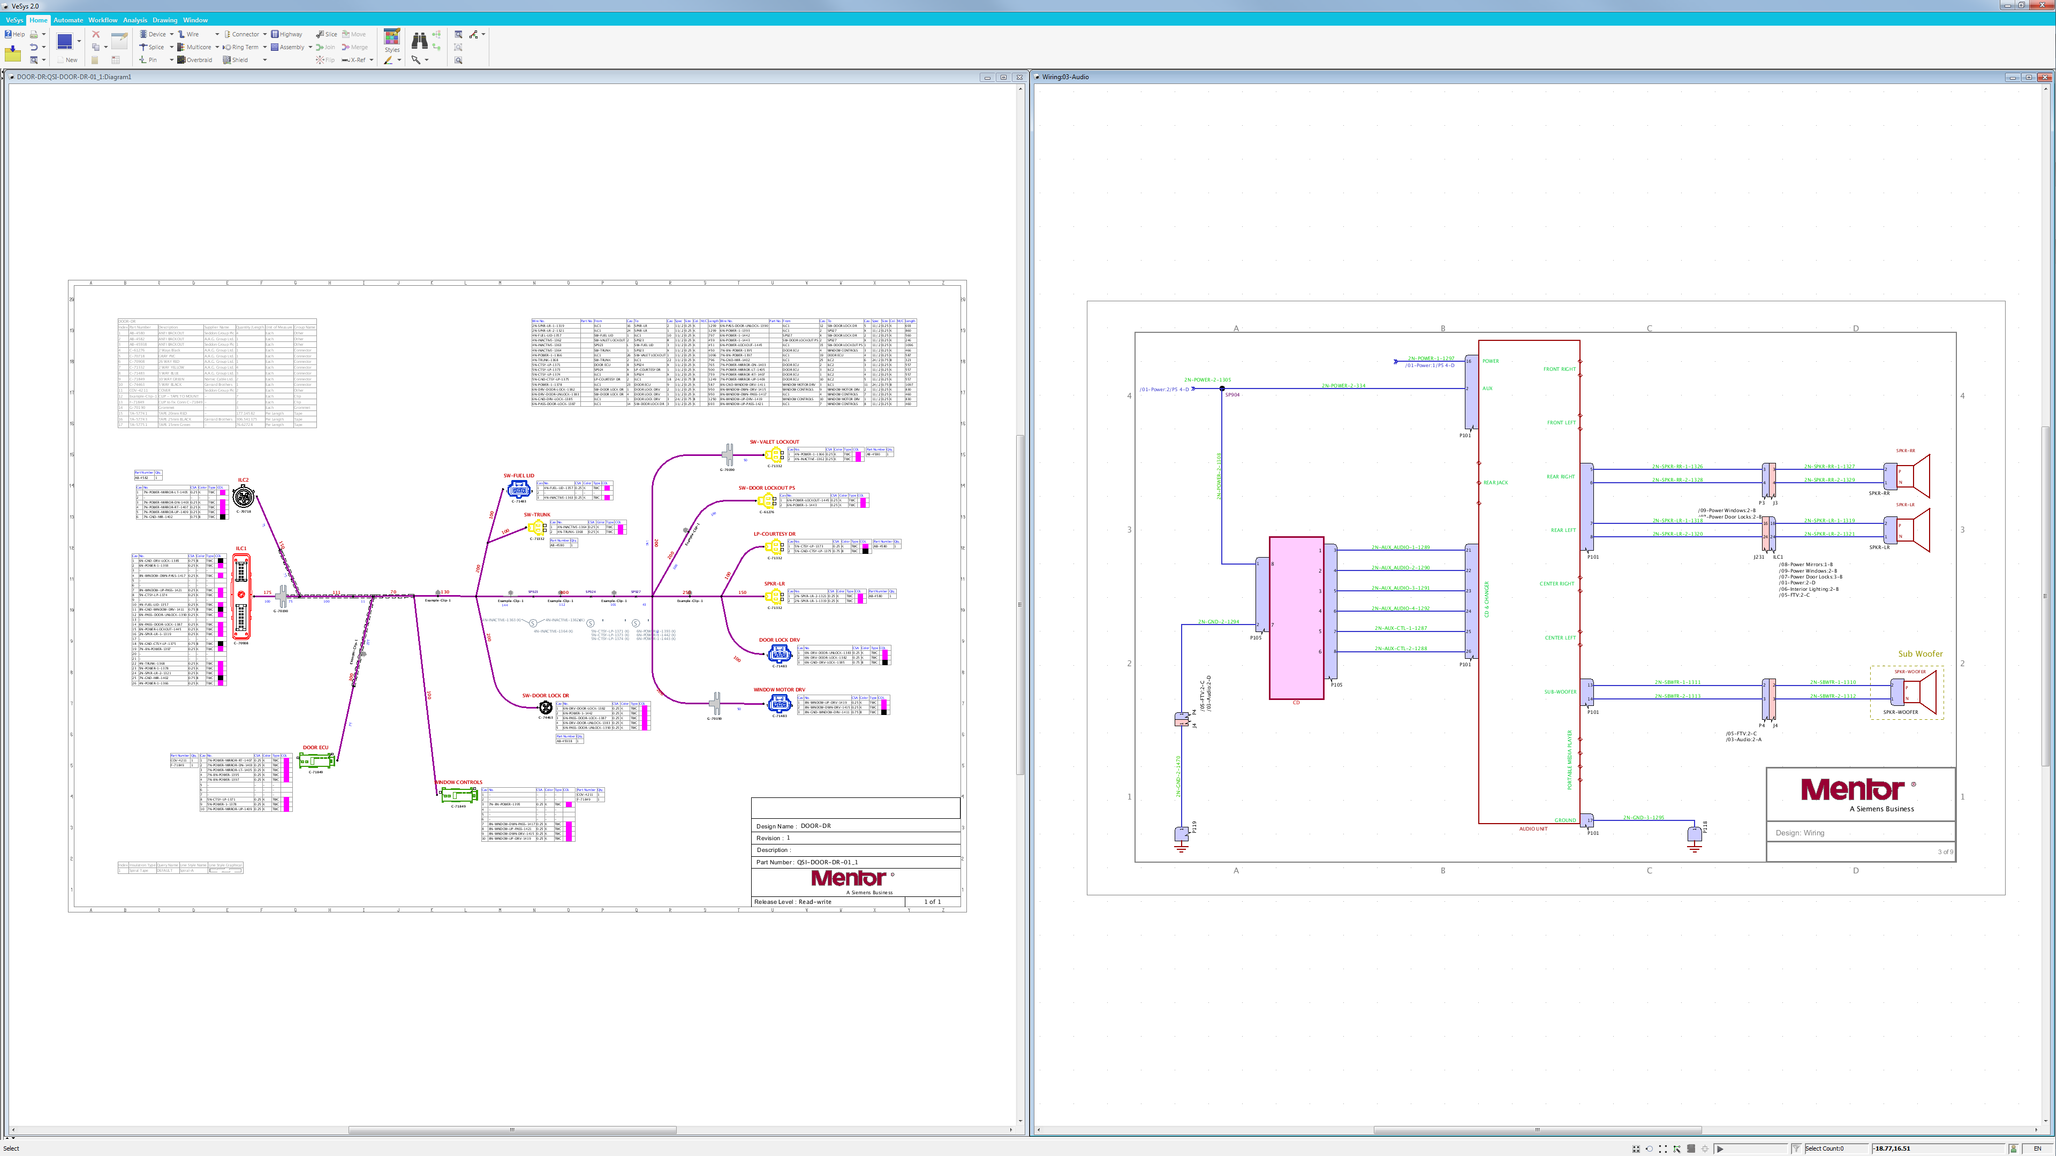 vesys electrical and wire harness design mentor graphicsWire Harness Design Software Wire Harness Software Electrical Harness #5